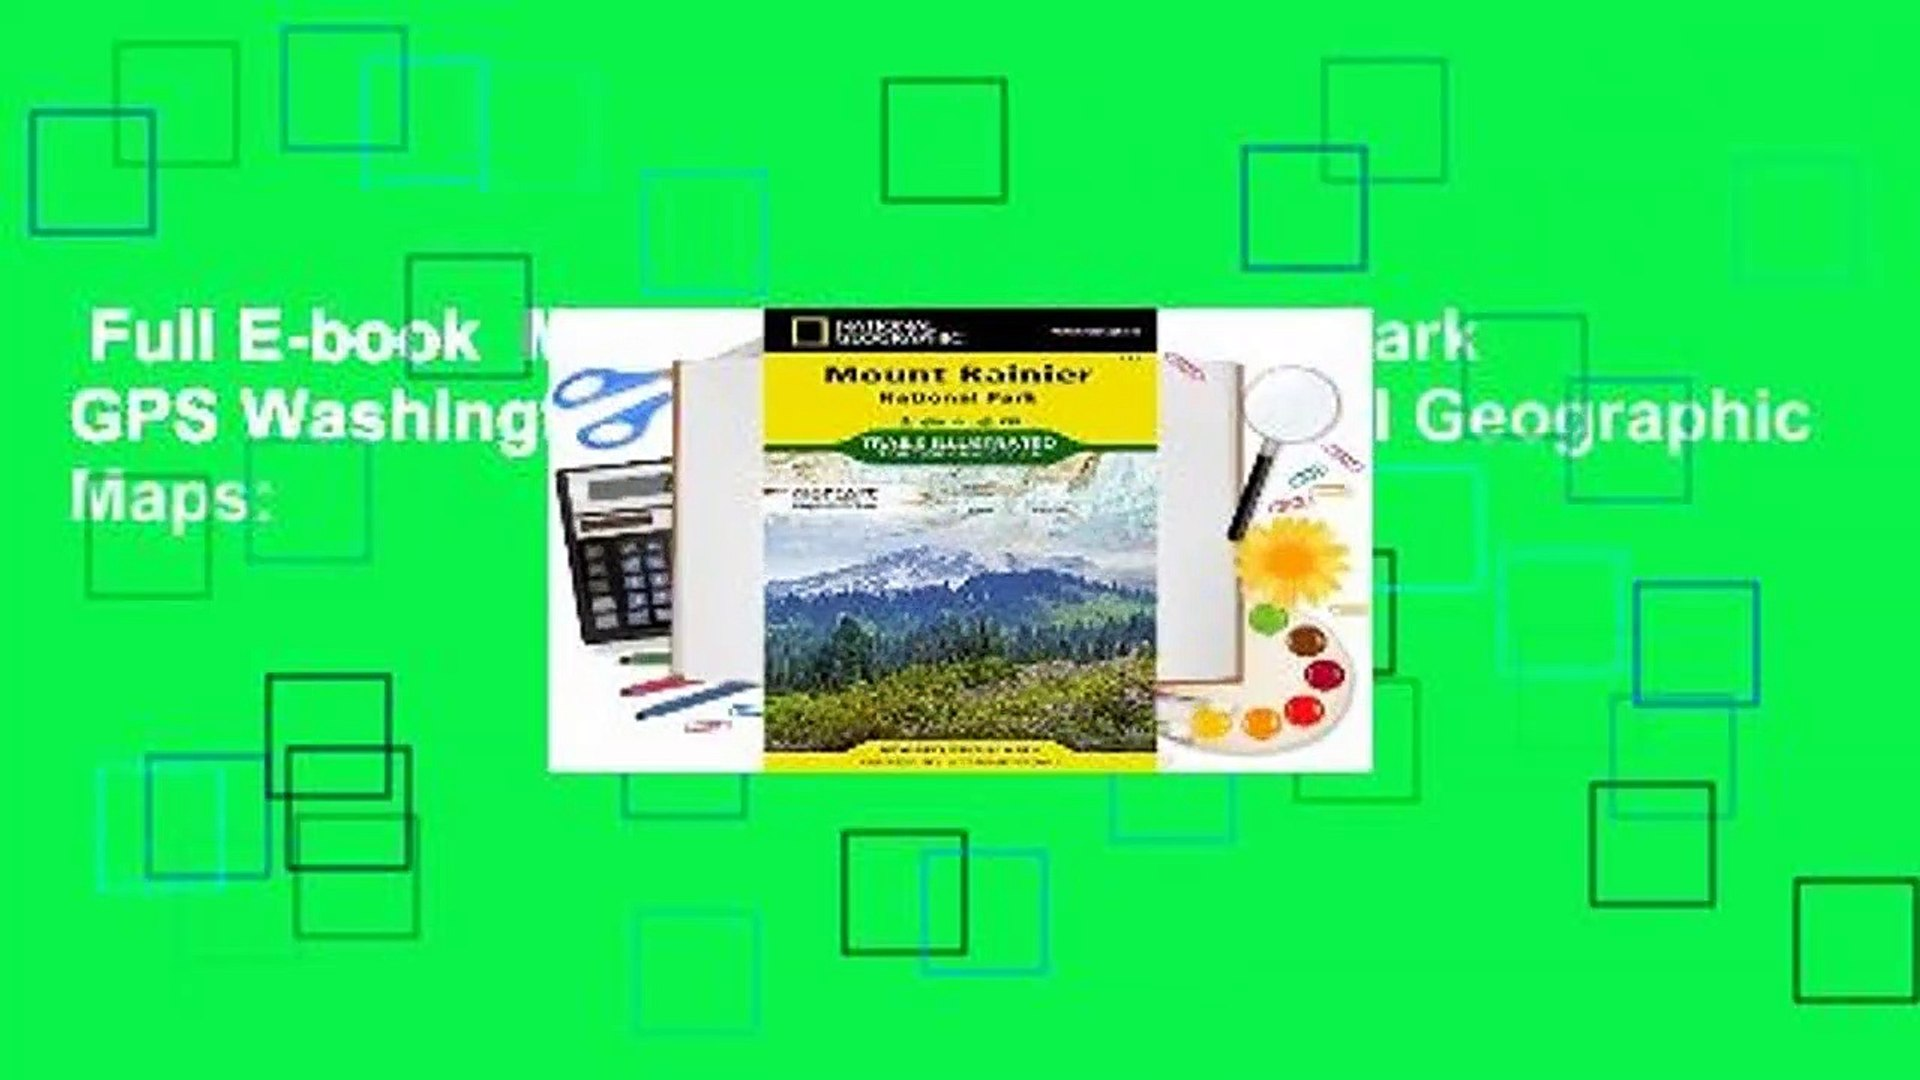 Full E-book  Mount Rainier National Park GPS Washington: NG.NP.217 (National Geographic Maps: